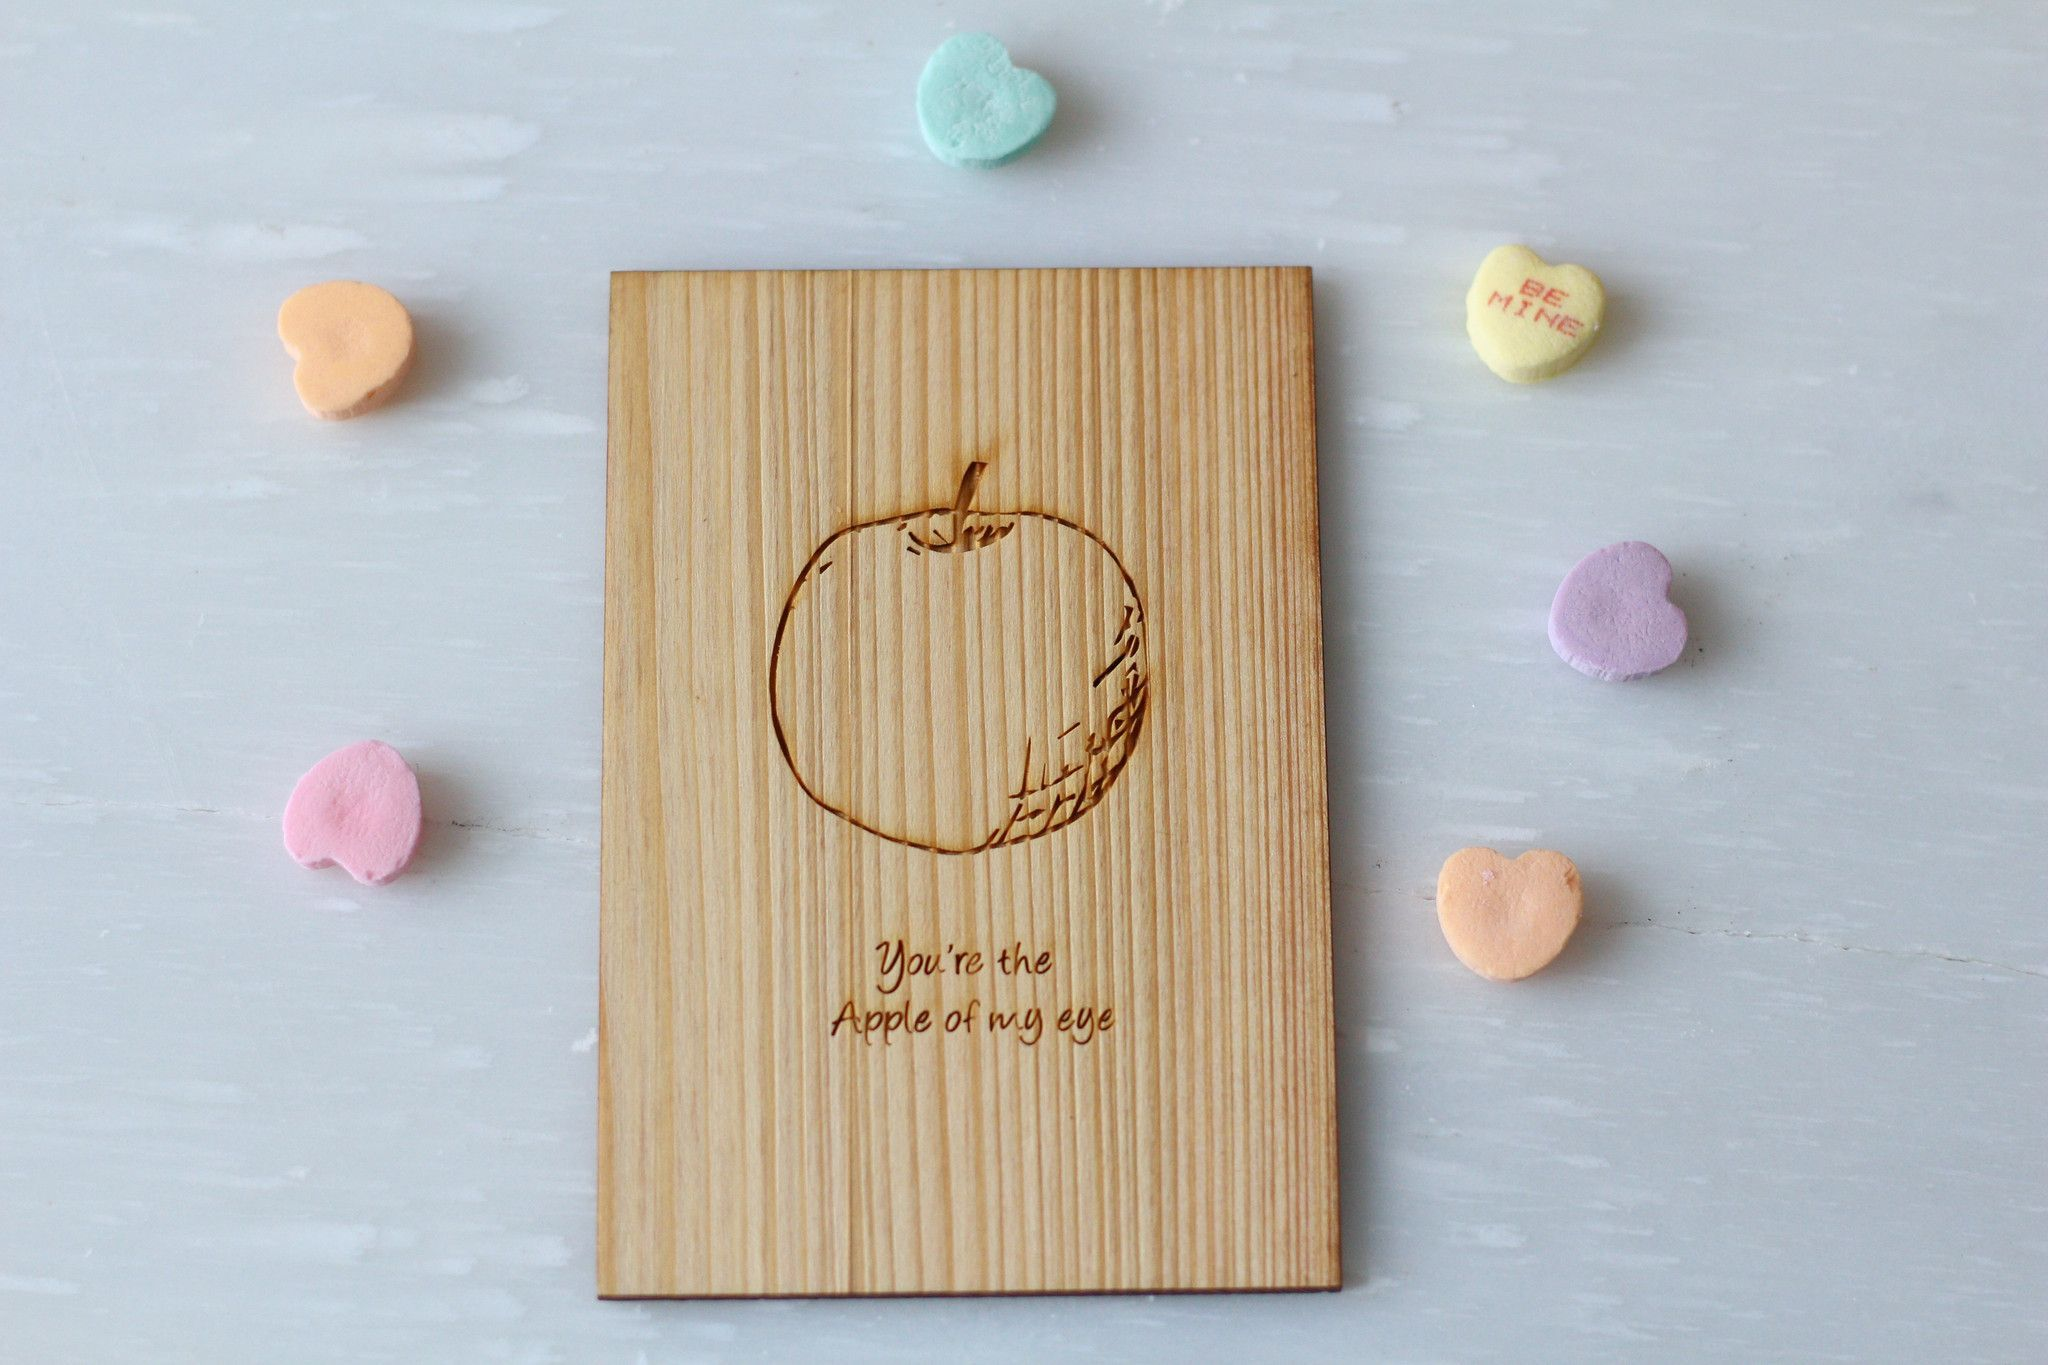 Wood greeting card apple of my eye products wood greeting card apple of my eye m4hsunfo